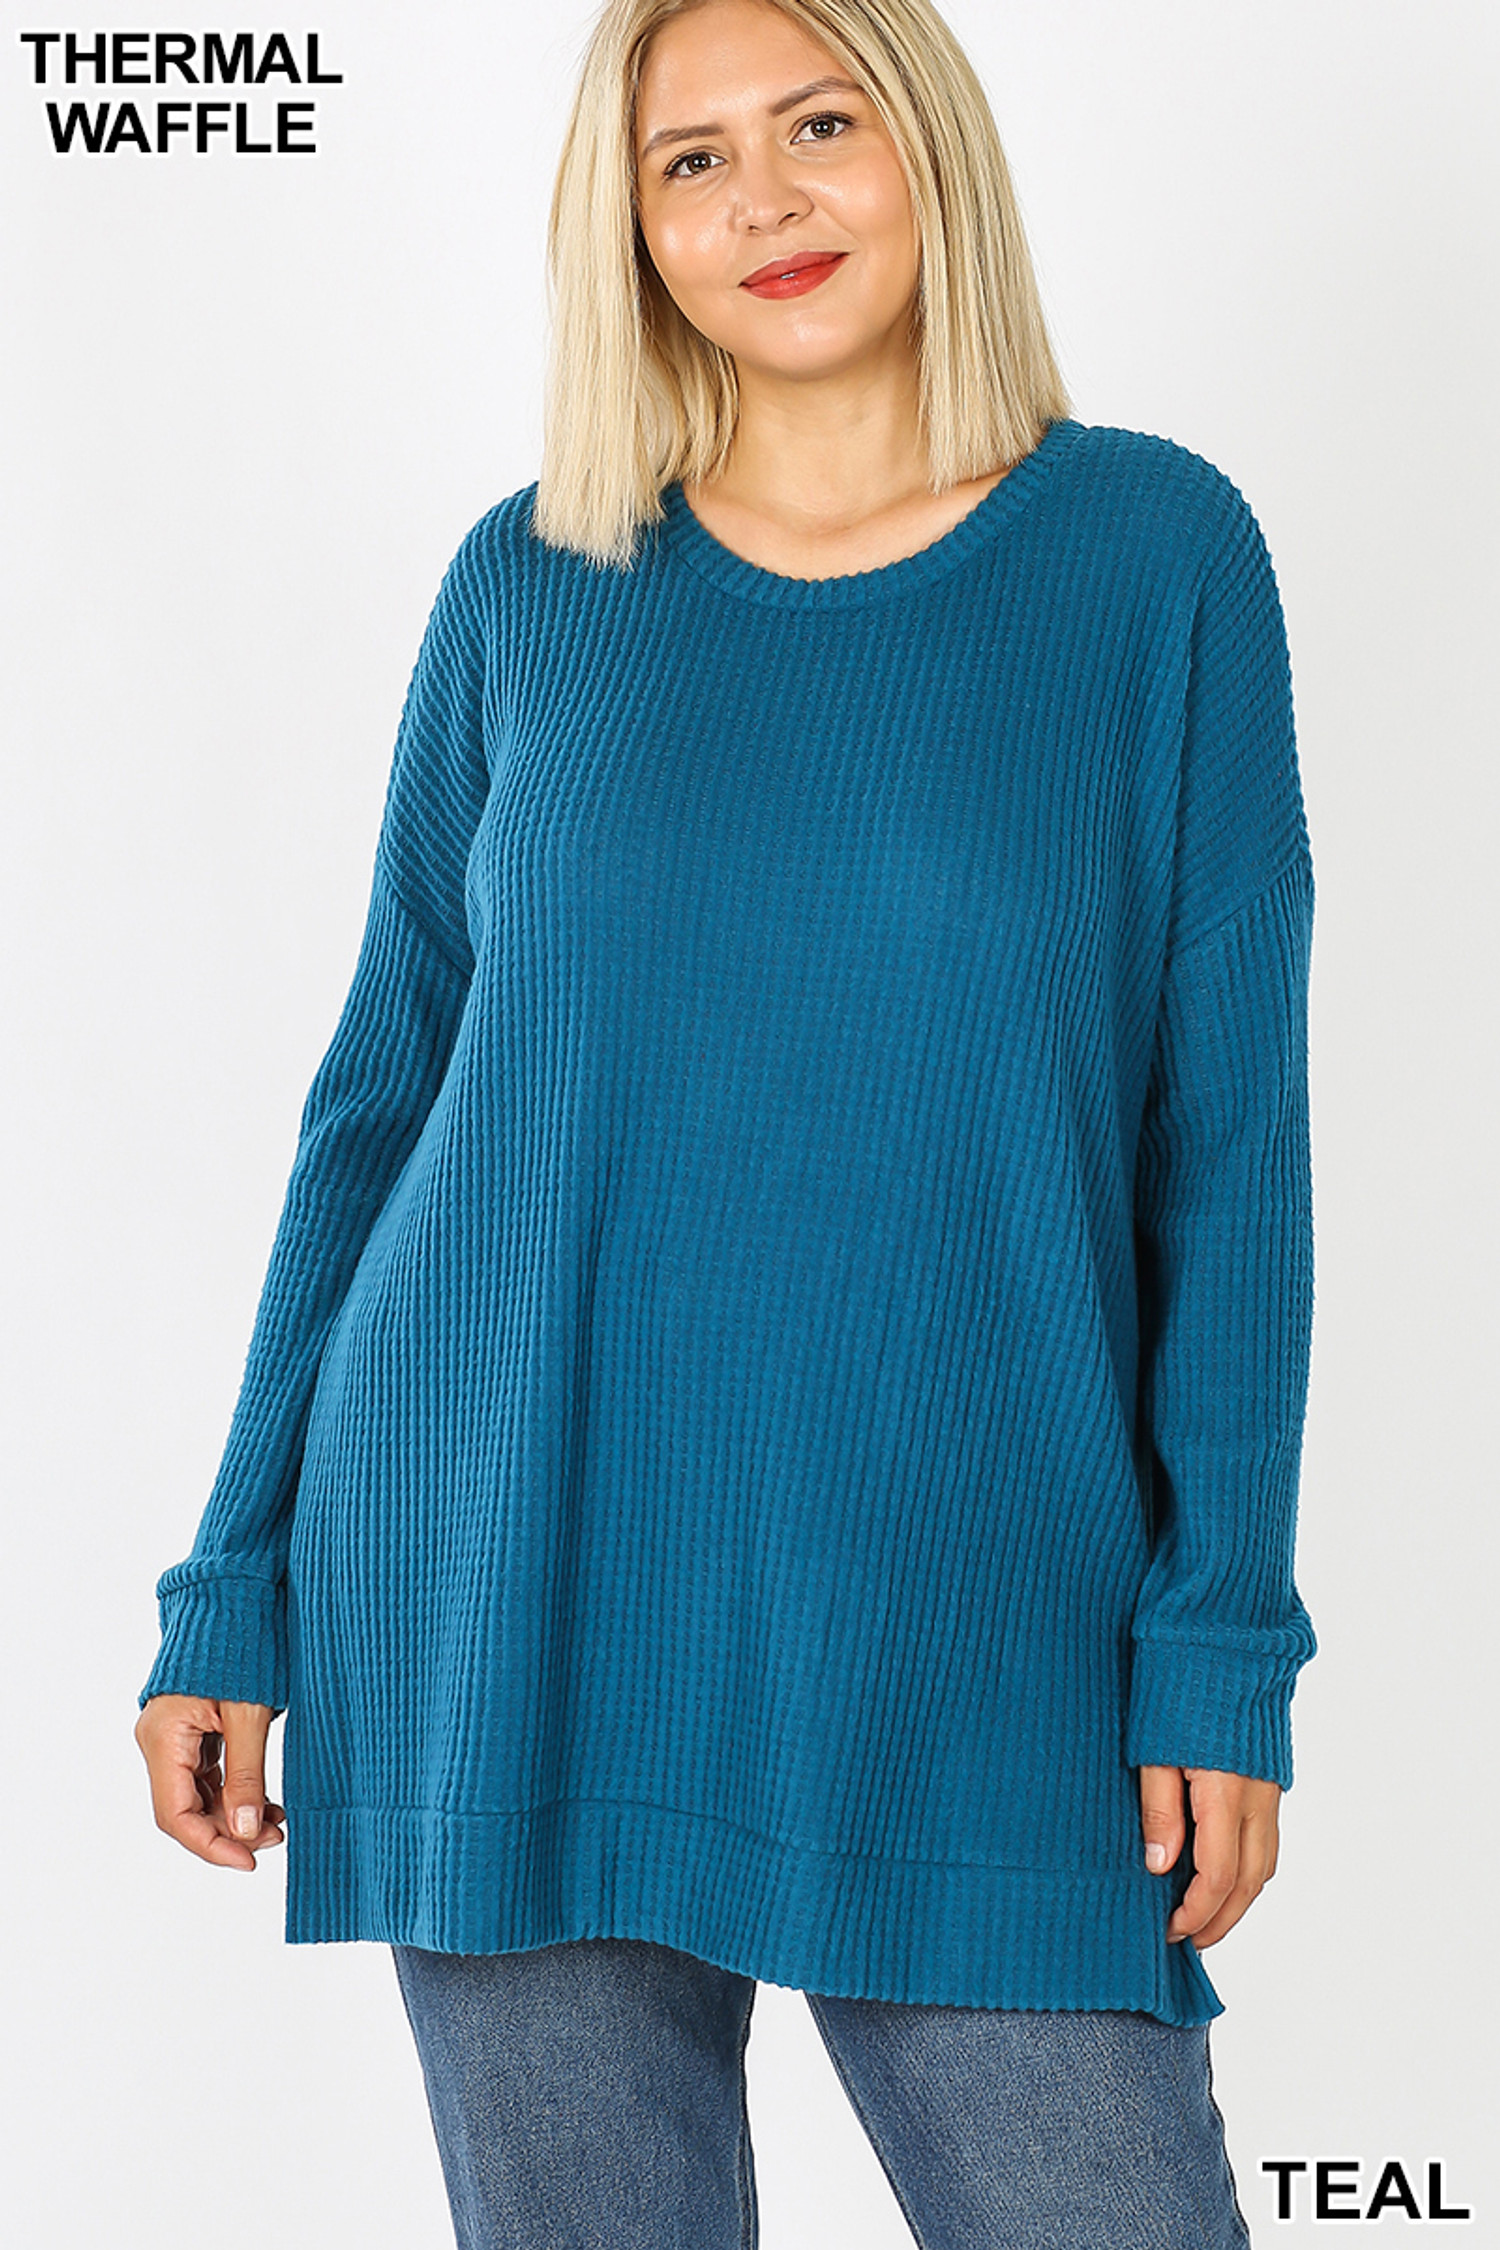 Front image of Teal Brushed Thermal Waffle Knit Round Neck Plus Size Sweater